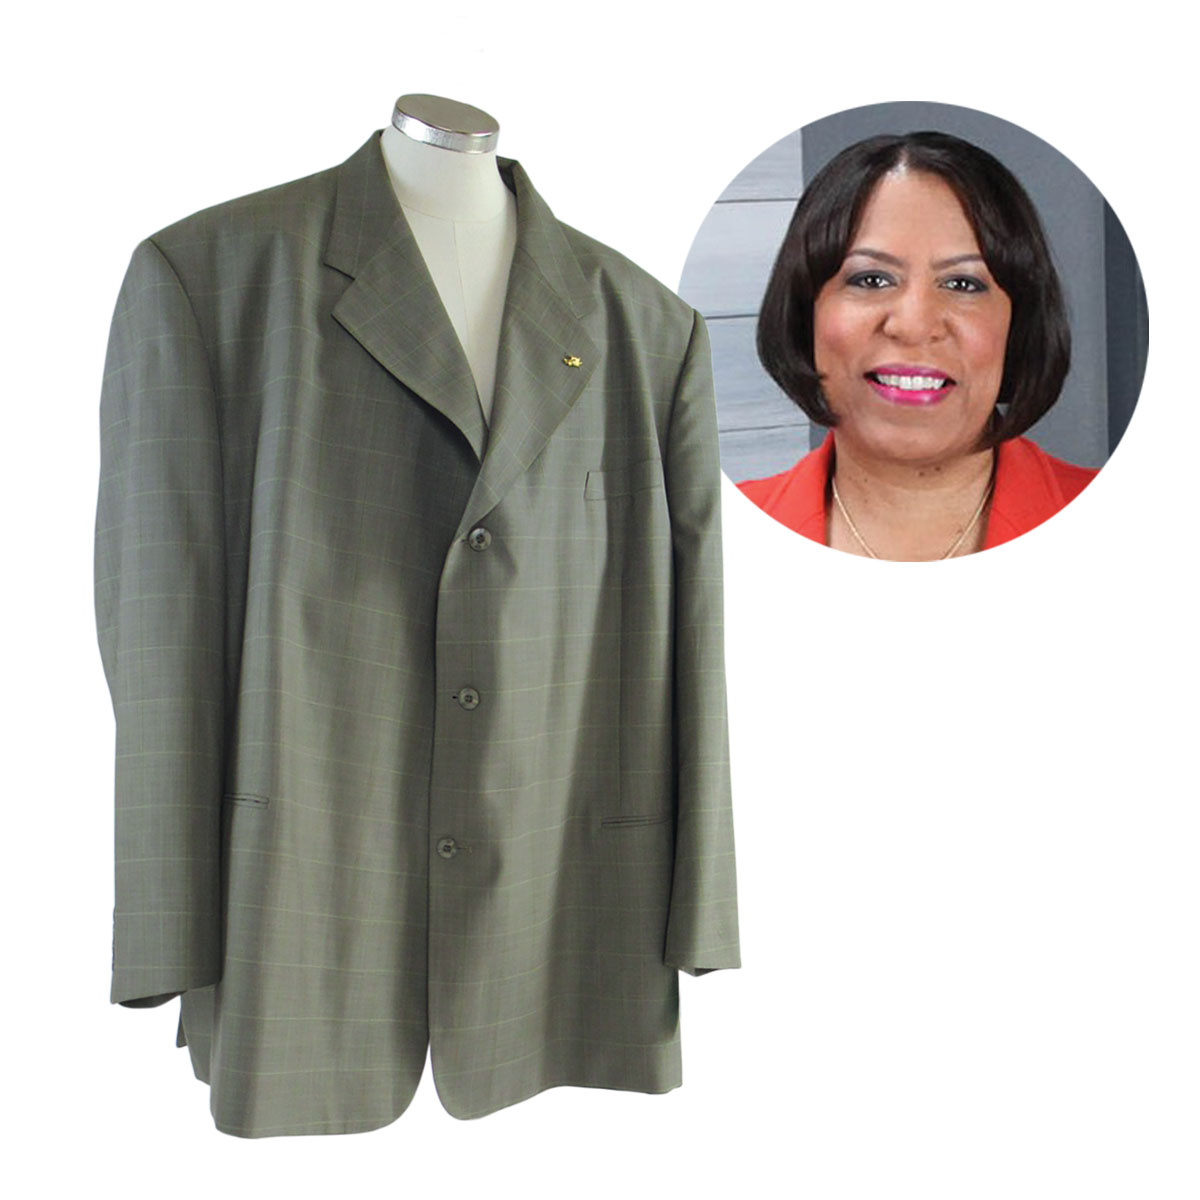 Pam Howard chose a size 56 sage green suit to upcycle